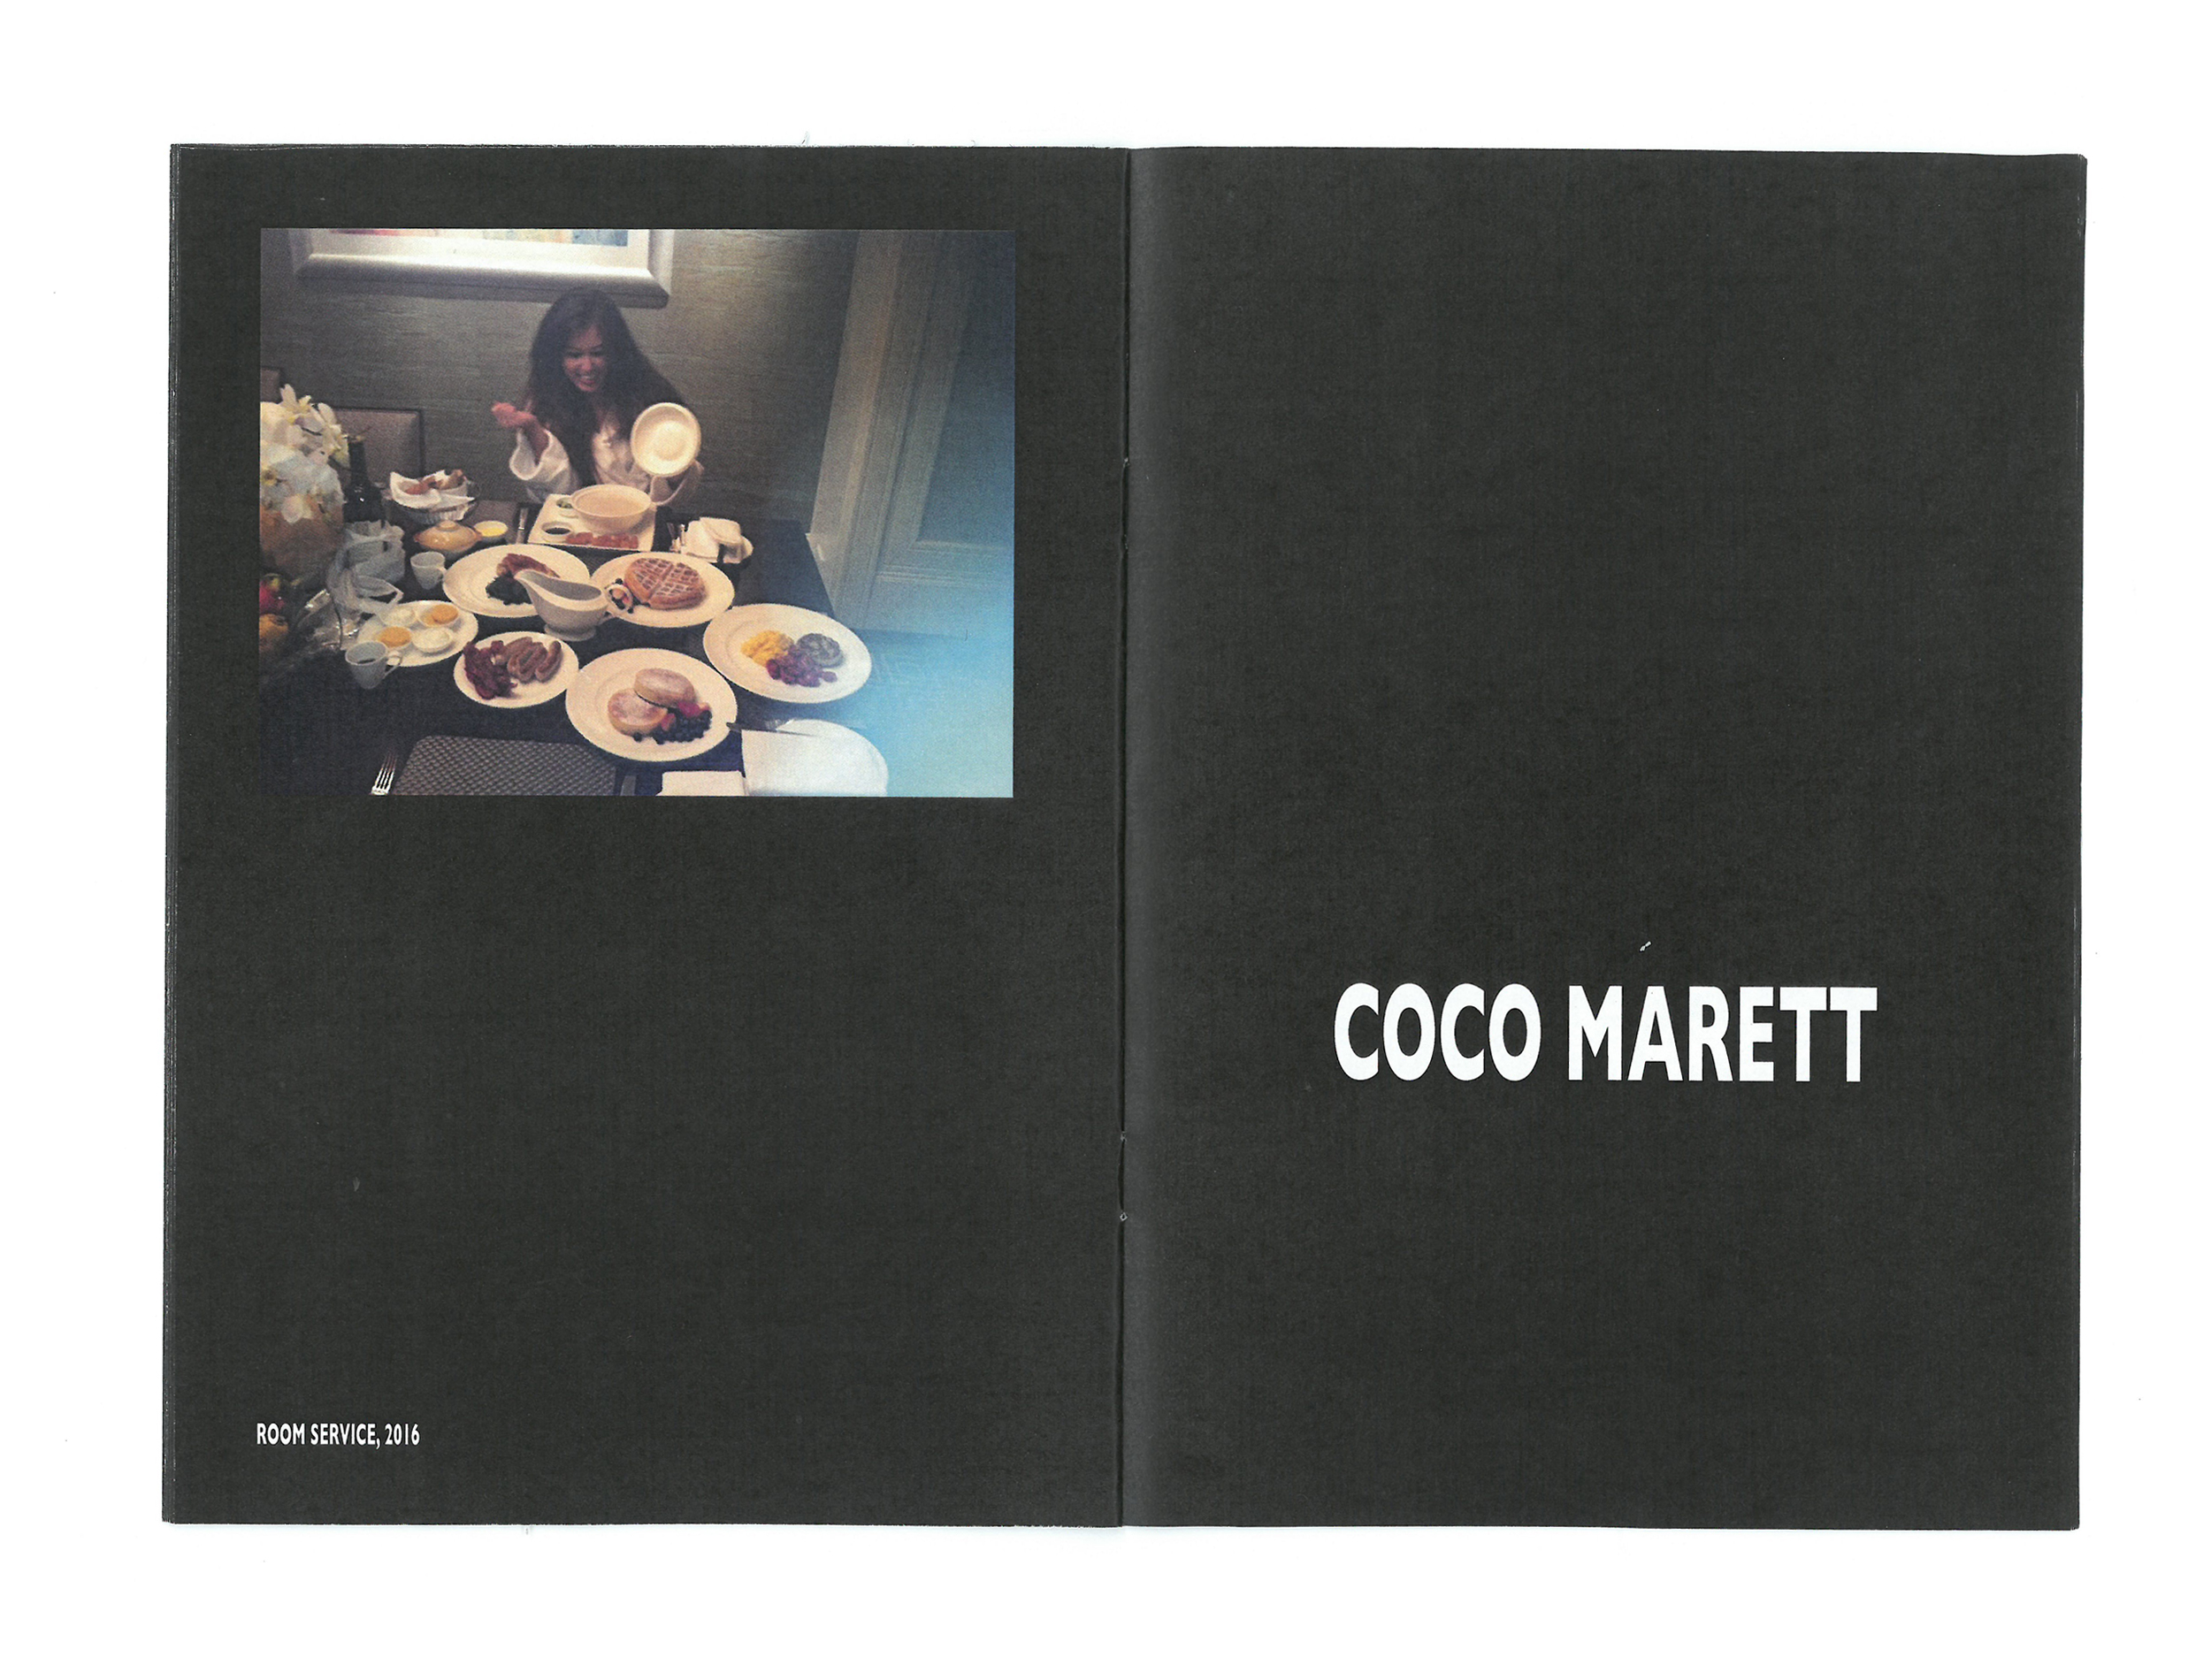 Time Zine: Breakfasttime with Coco Marett featuring Room Service, 2016